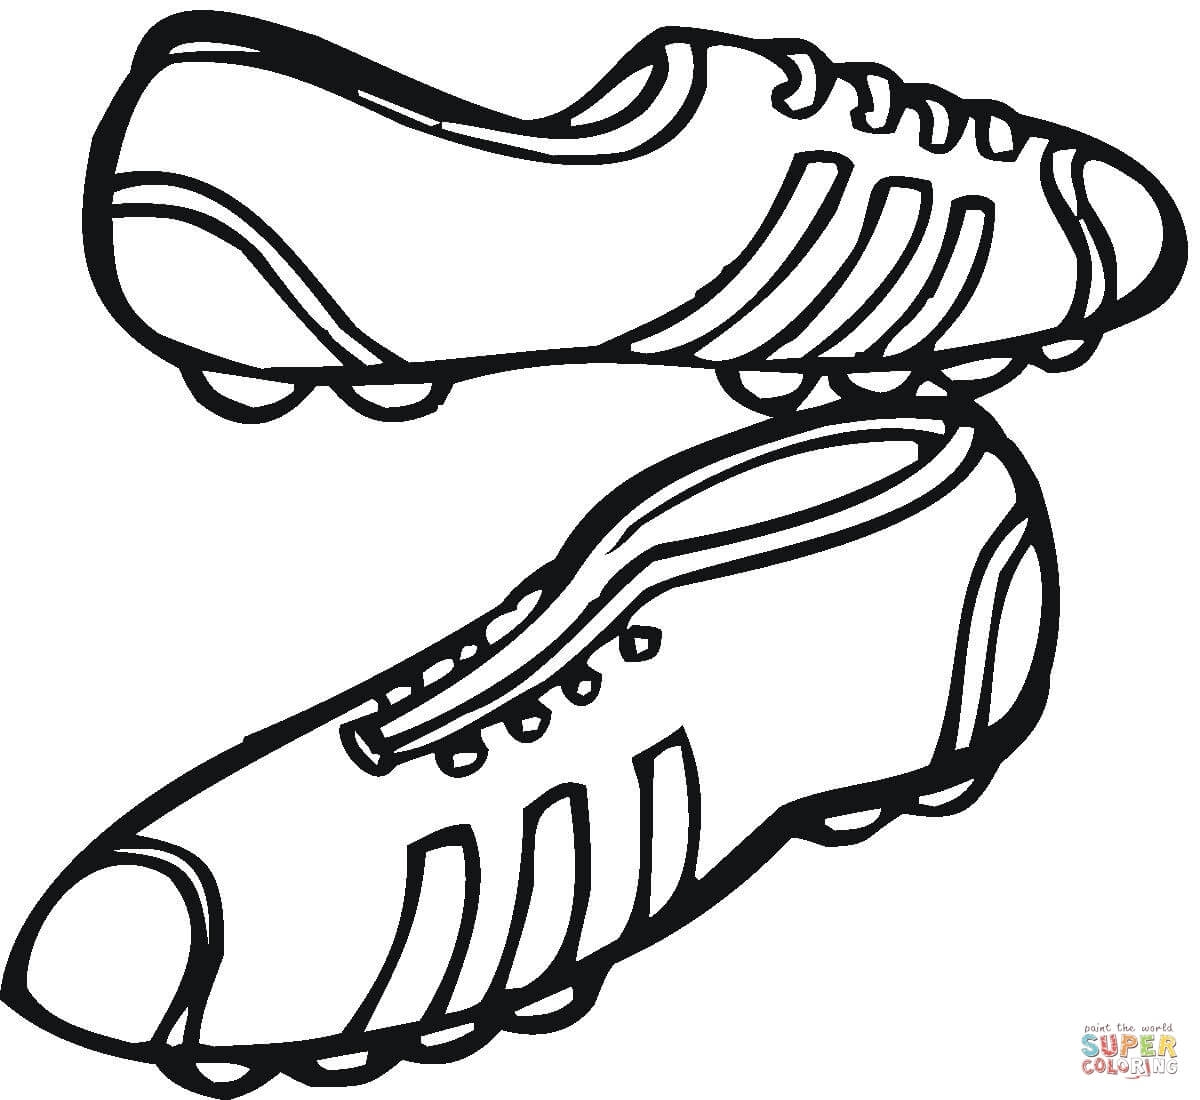 sneaker coloring page - sneakers